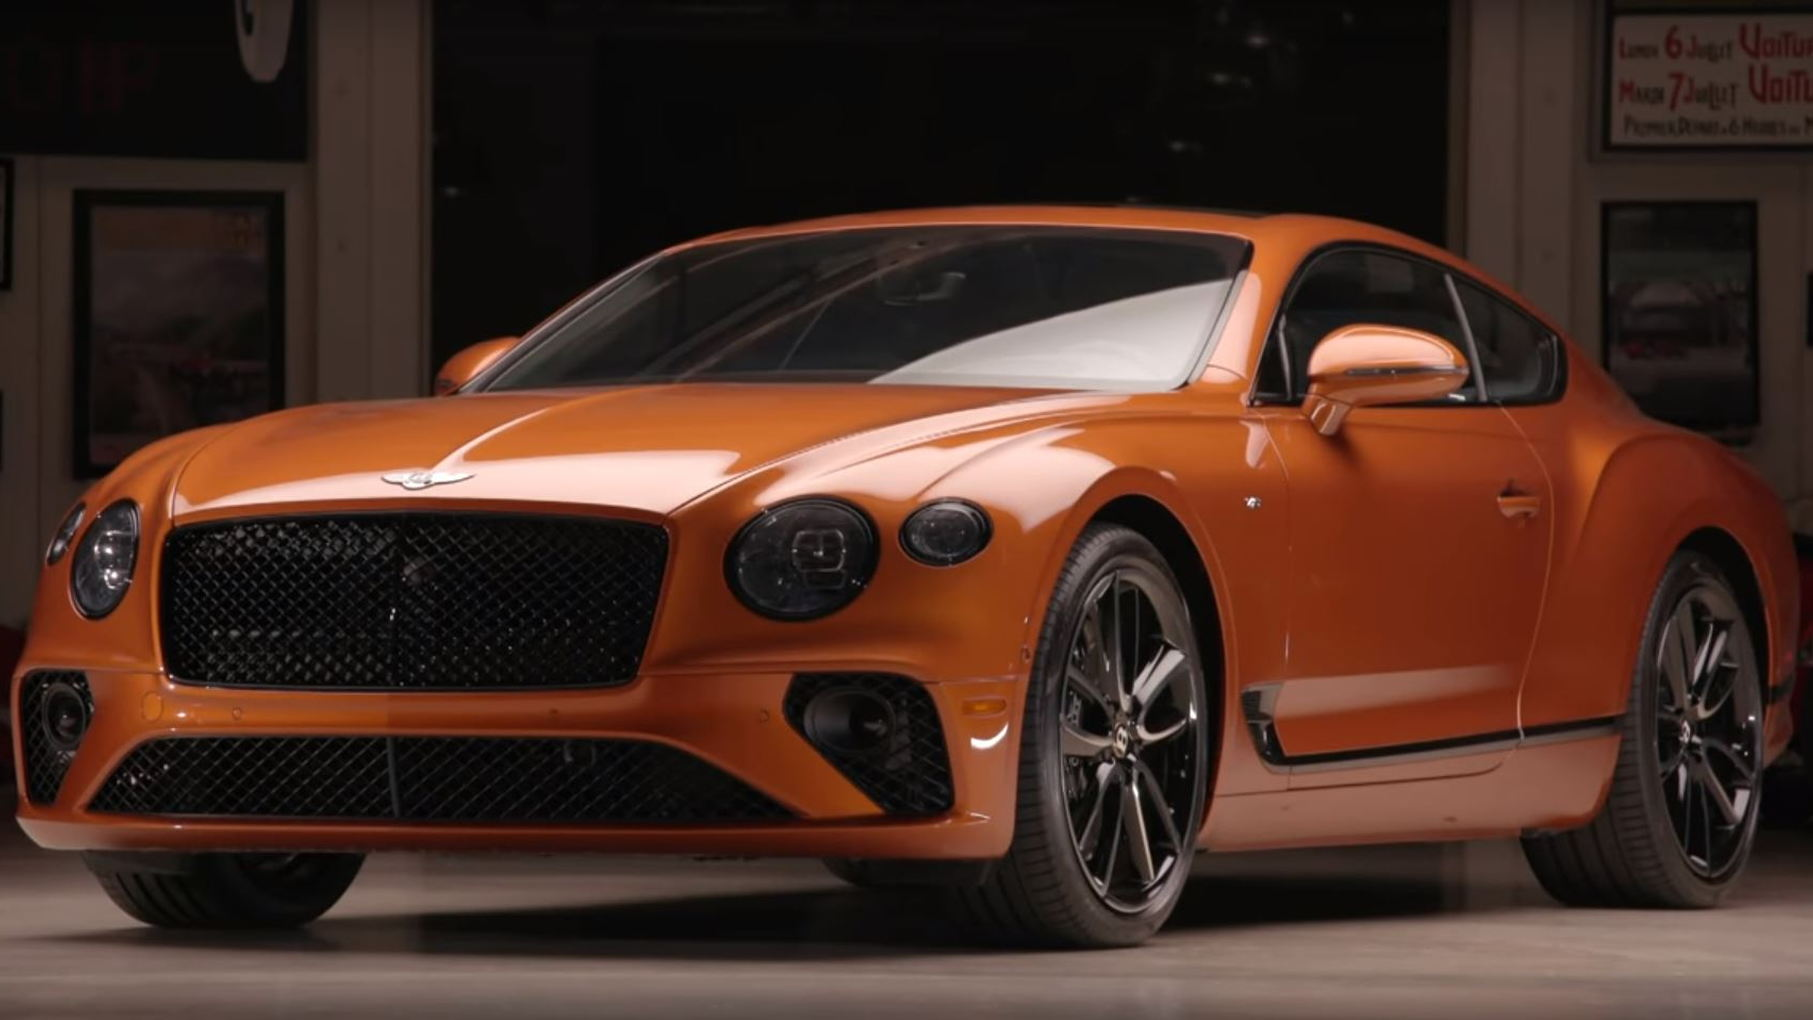 2020 Bentley Continental GT on JLG